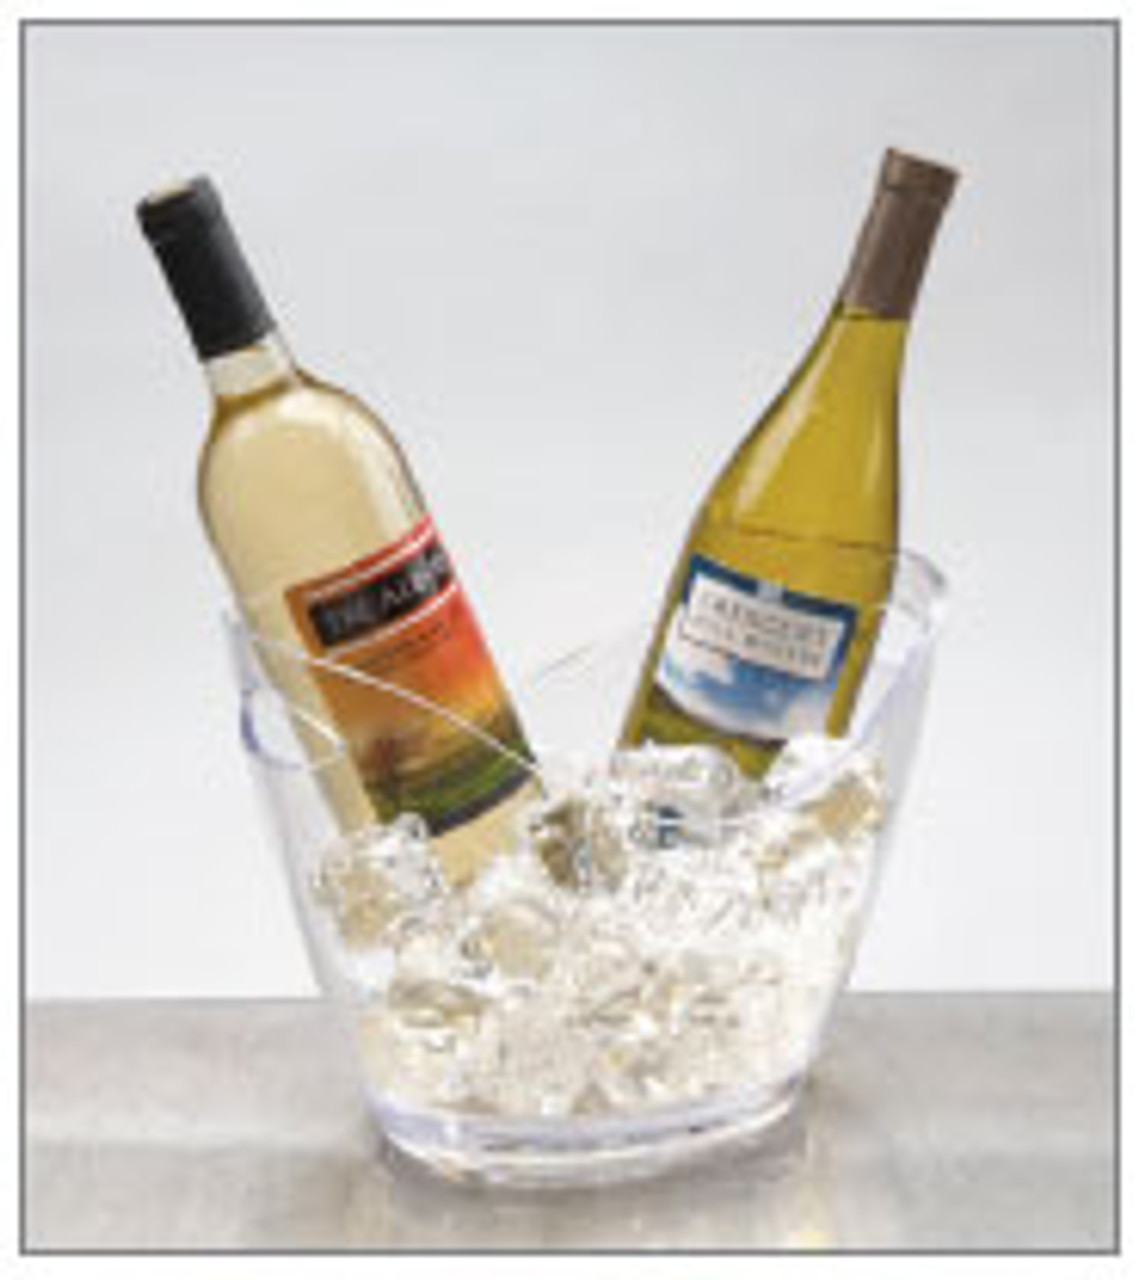 Print your own wine labels with the Primera LX400 color label printer.